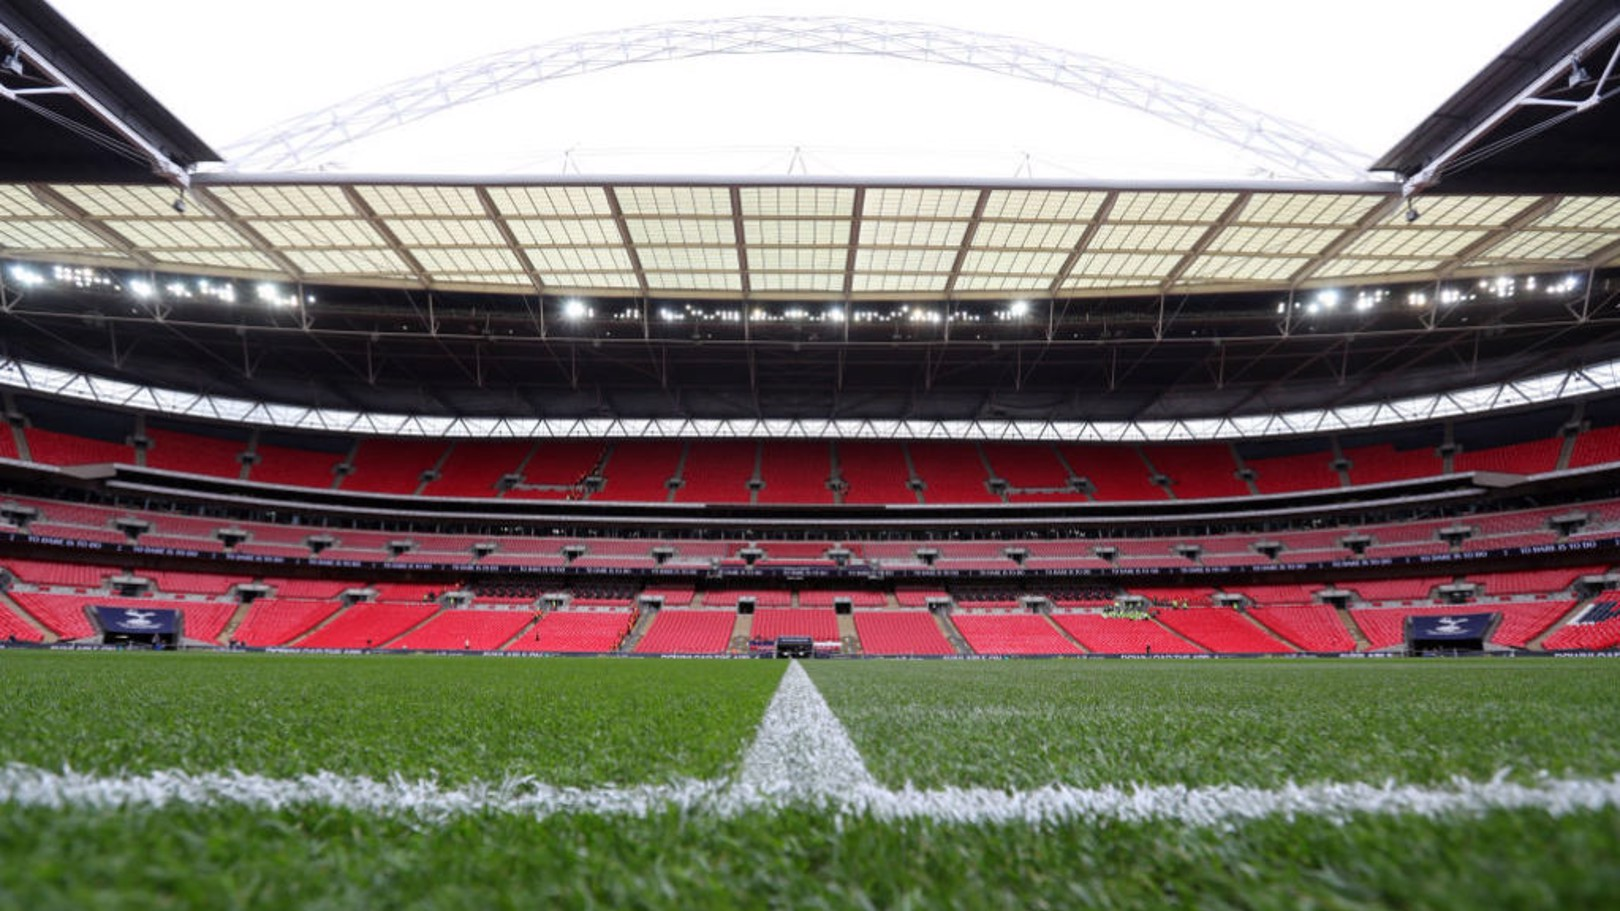 WEMBLEY: Tickets for the FA Cup semi-final against Brighton are now on general sale